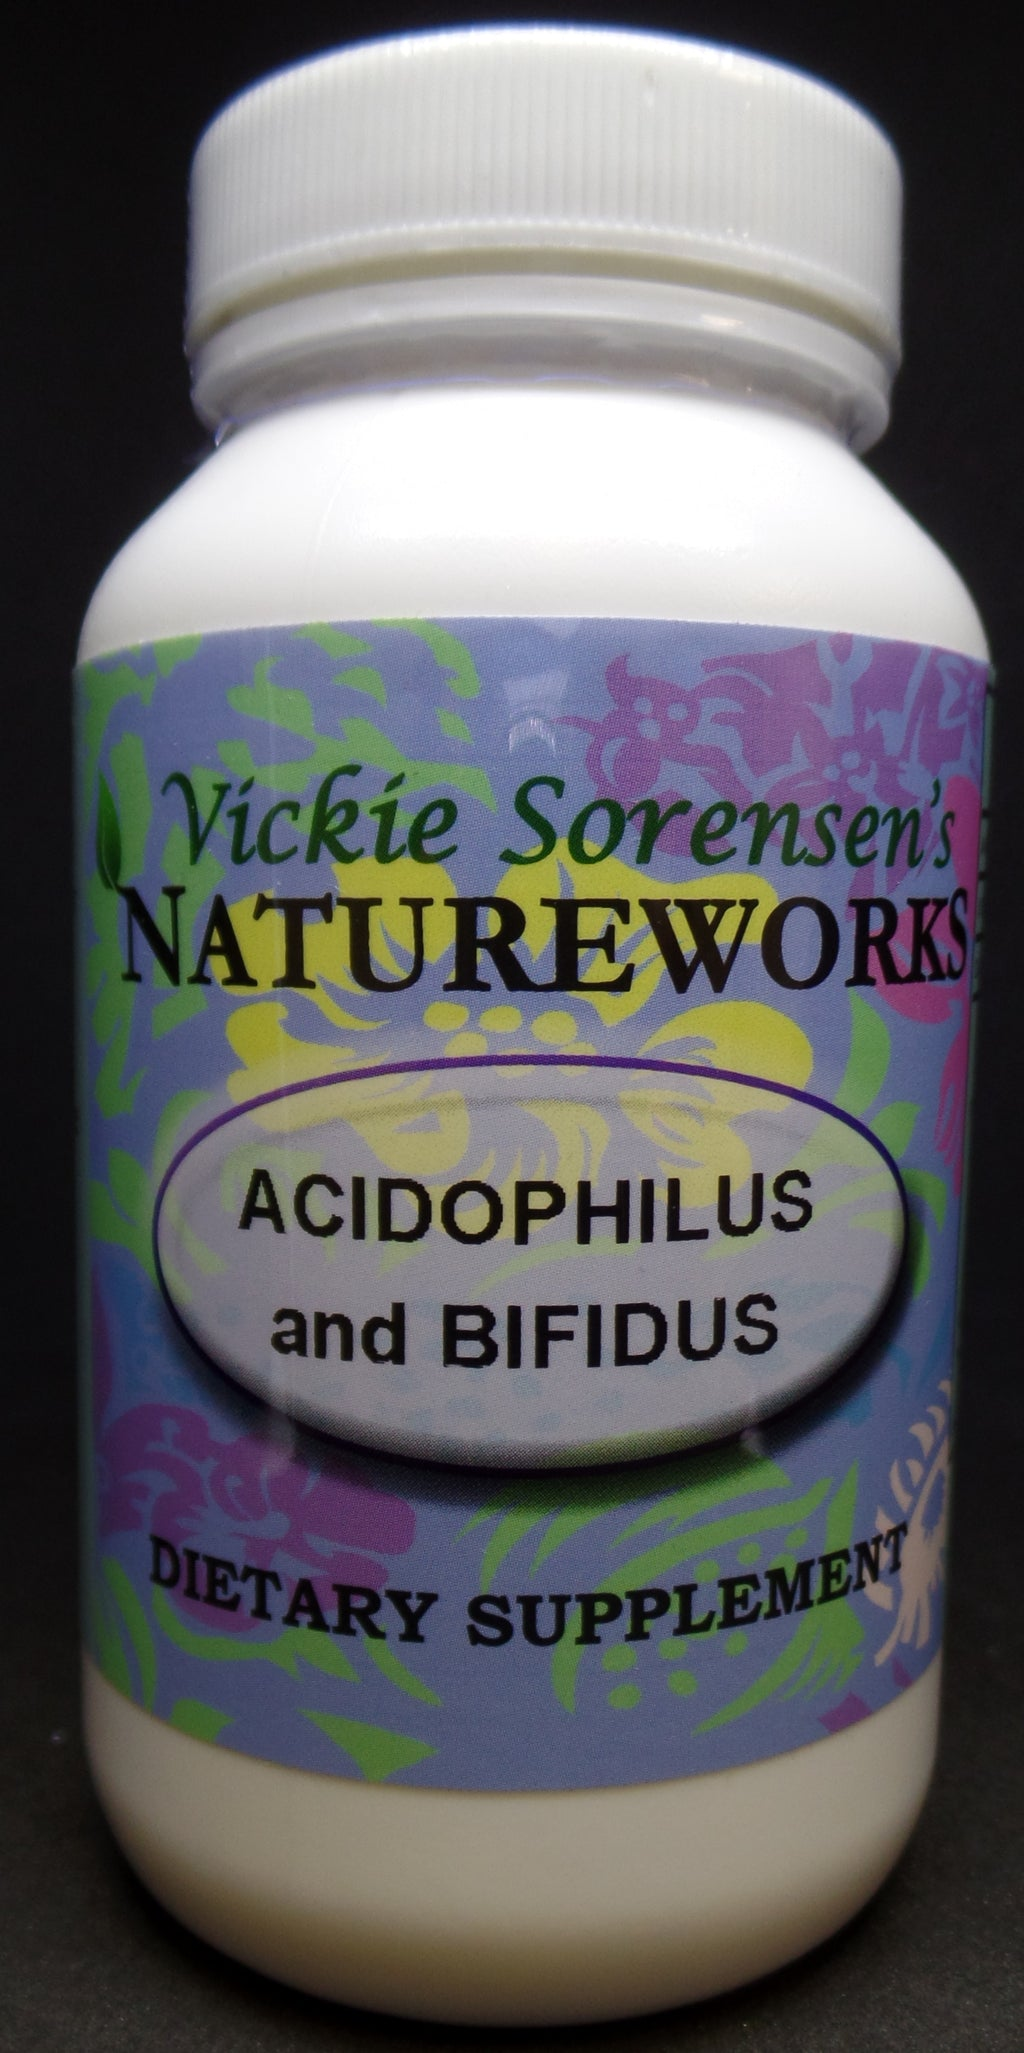 Acidophilus and Bifidus